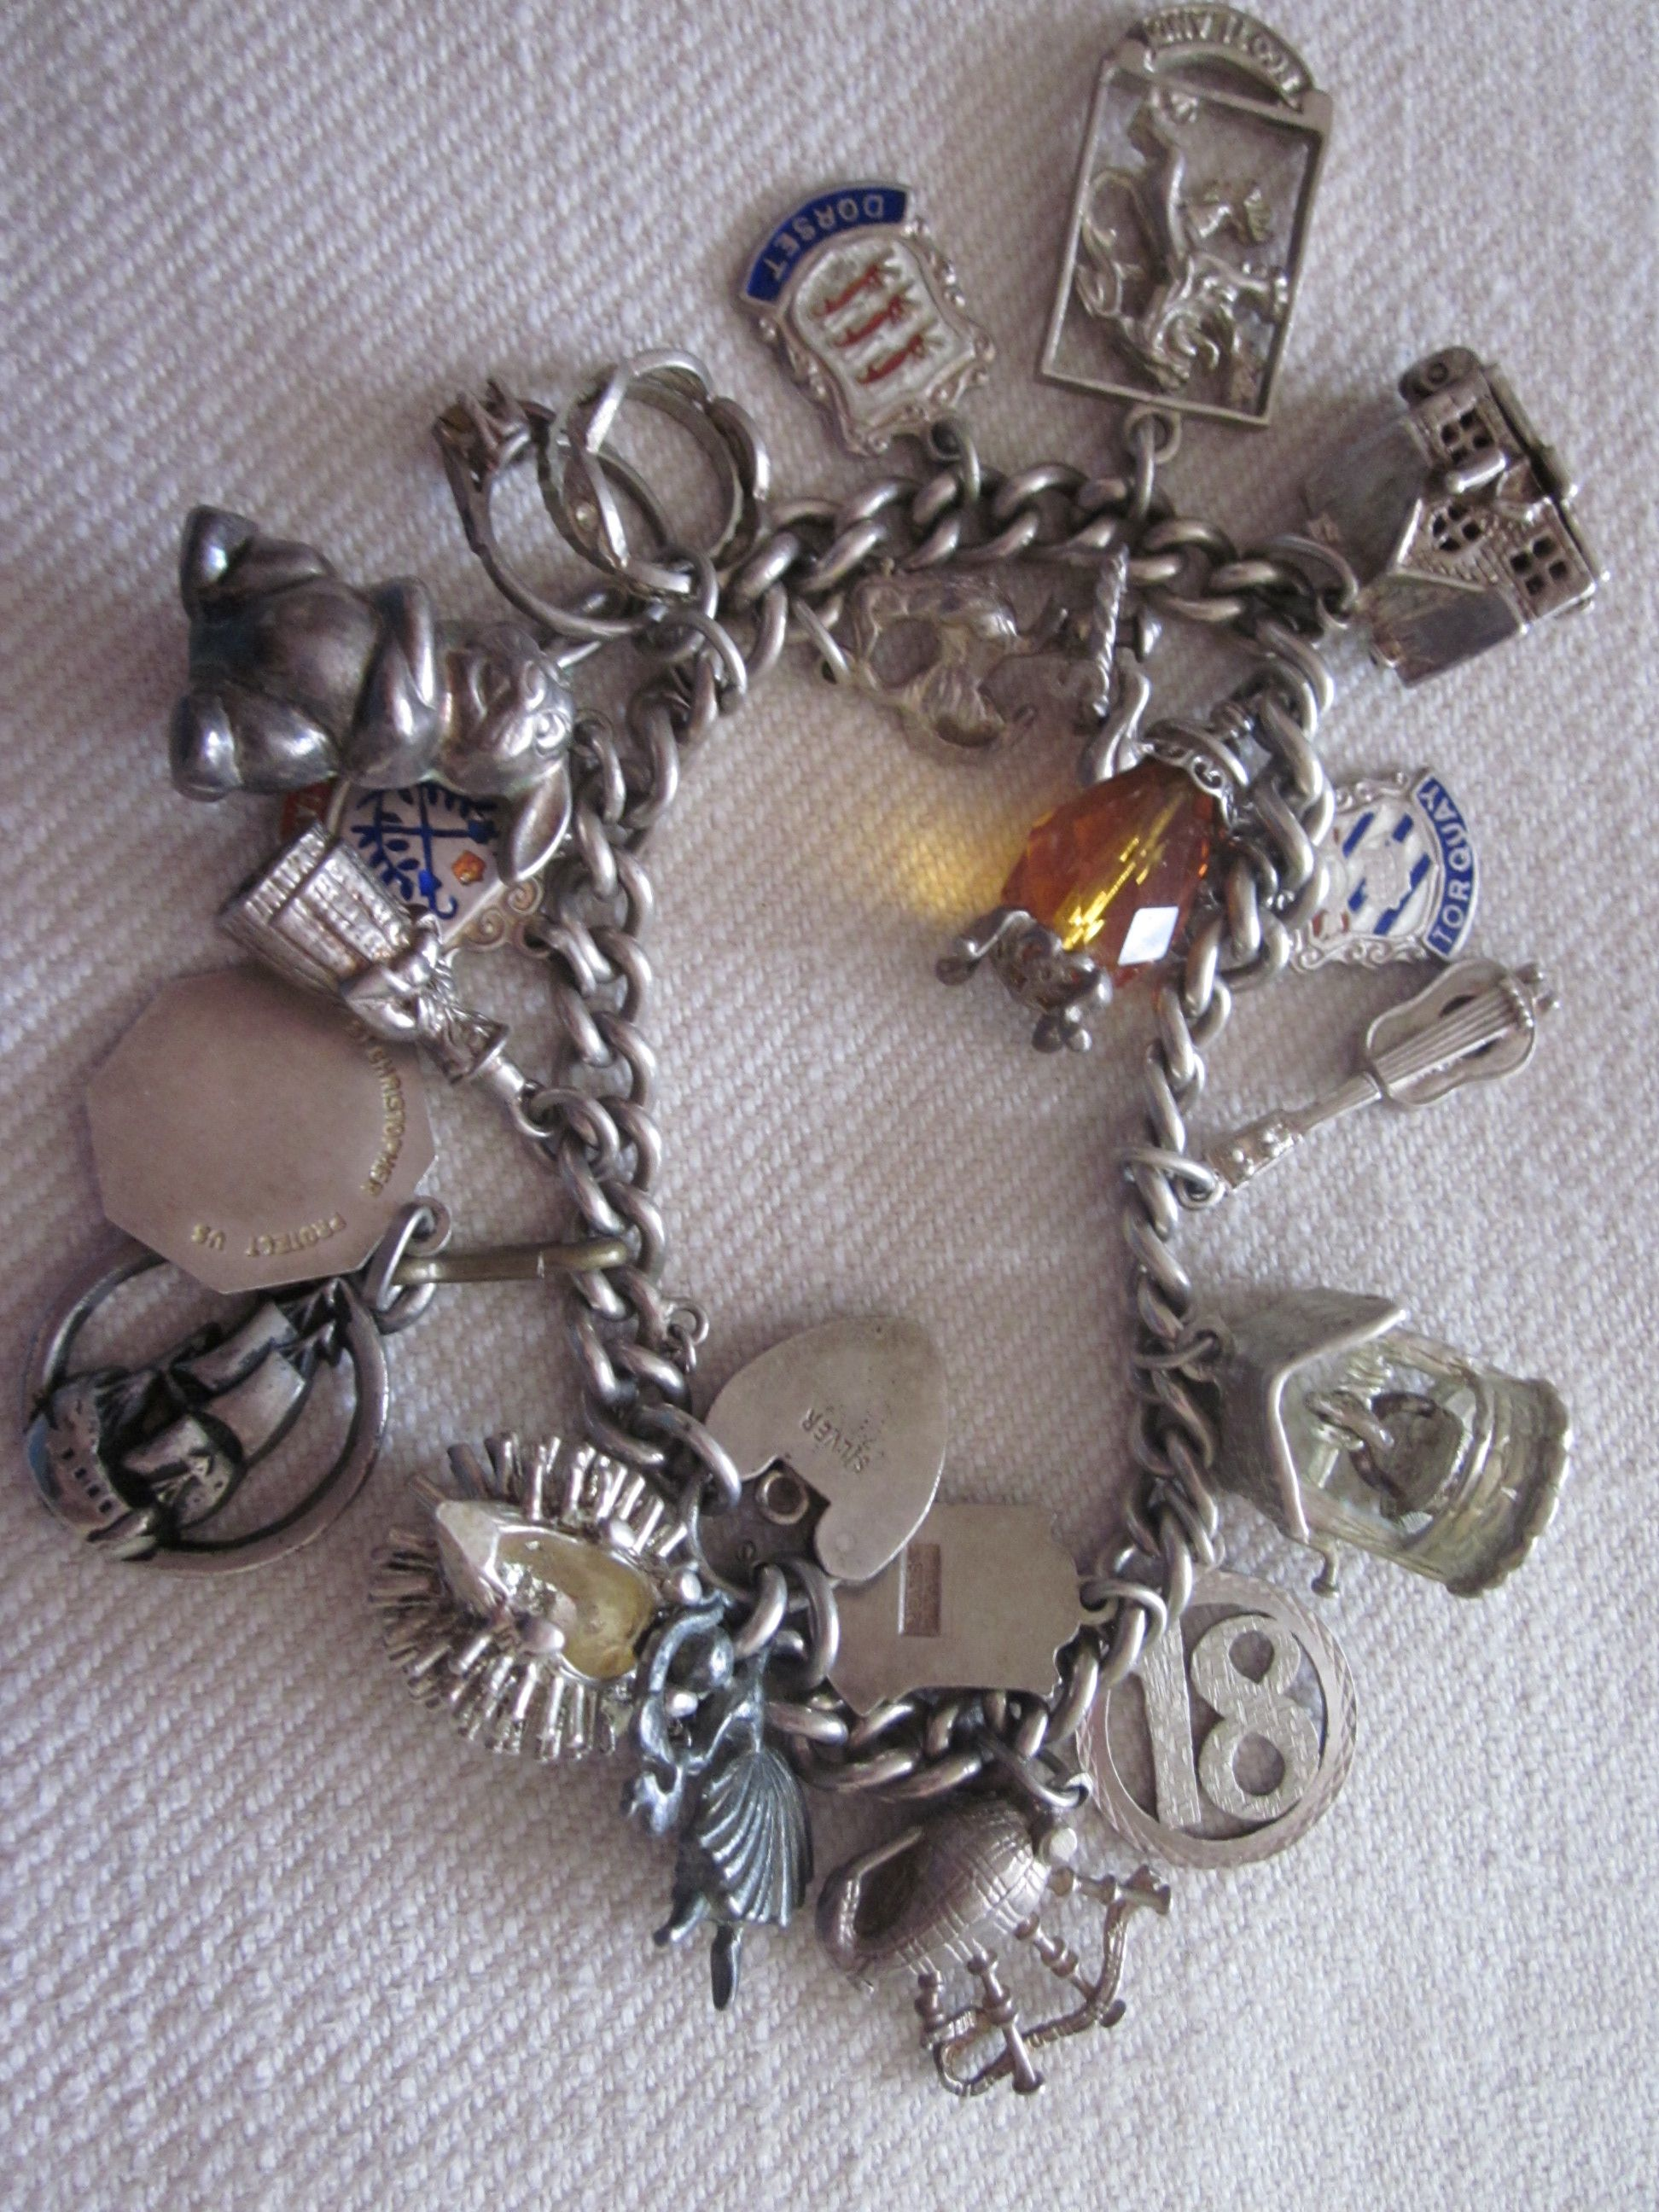 1960 s charm bracelet so much fun to collect charms that meant